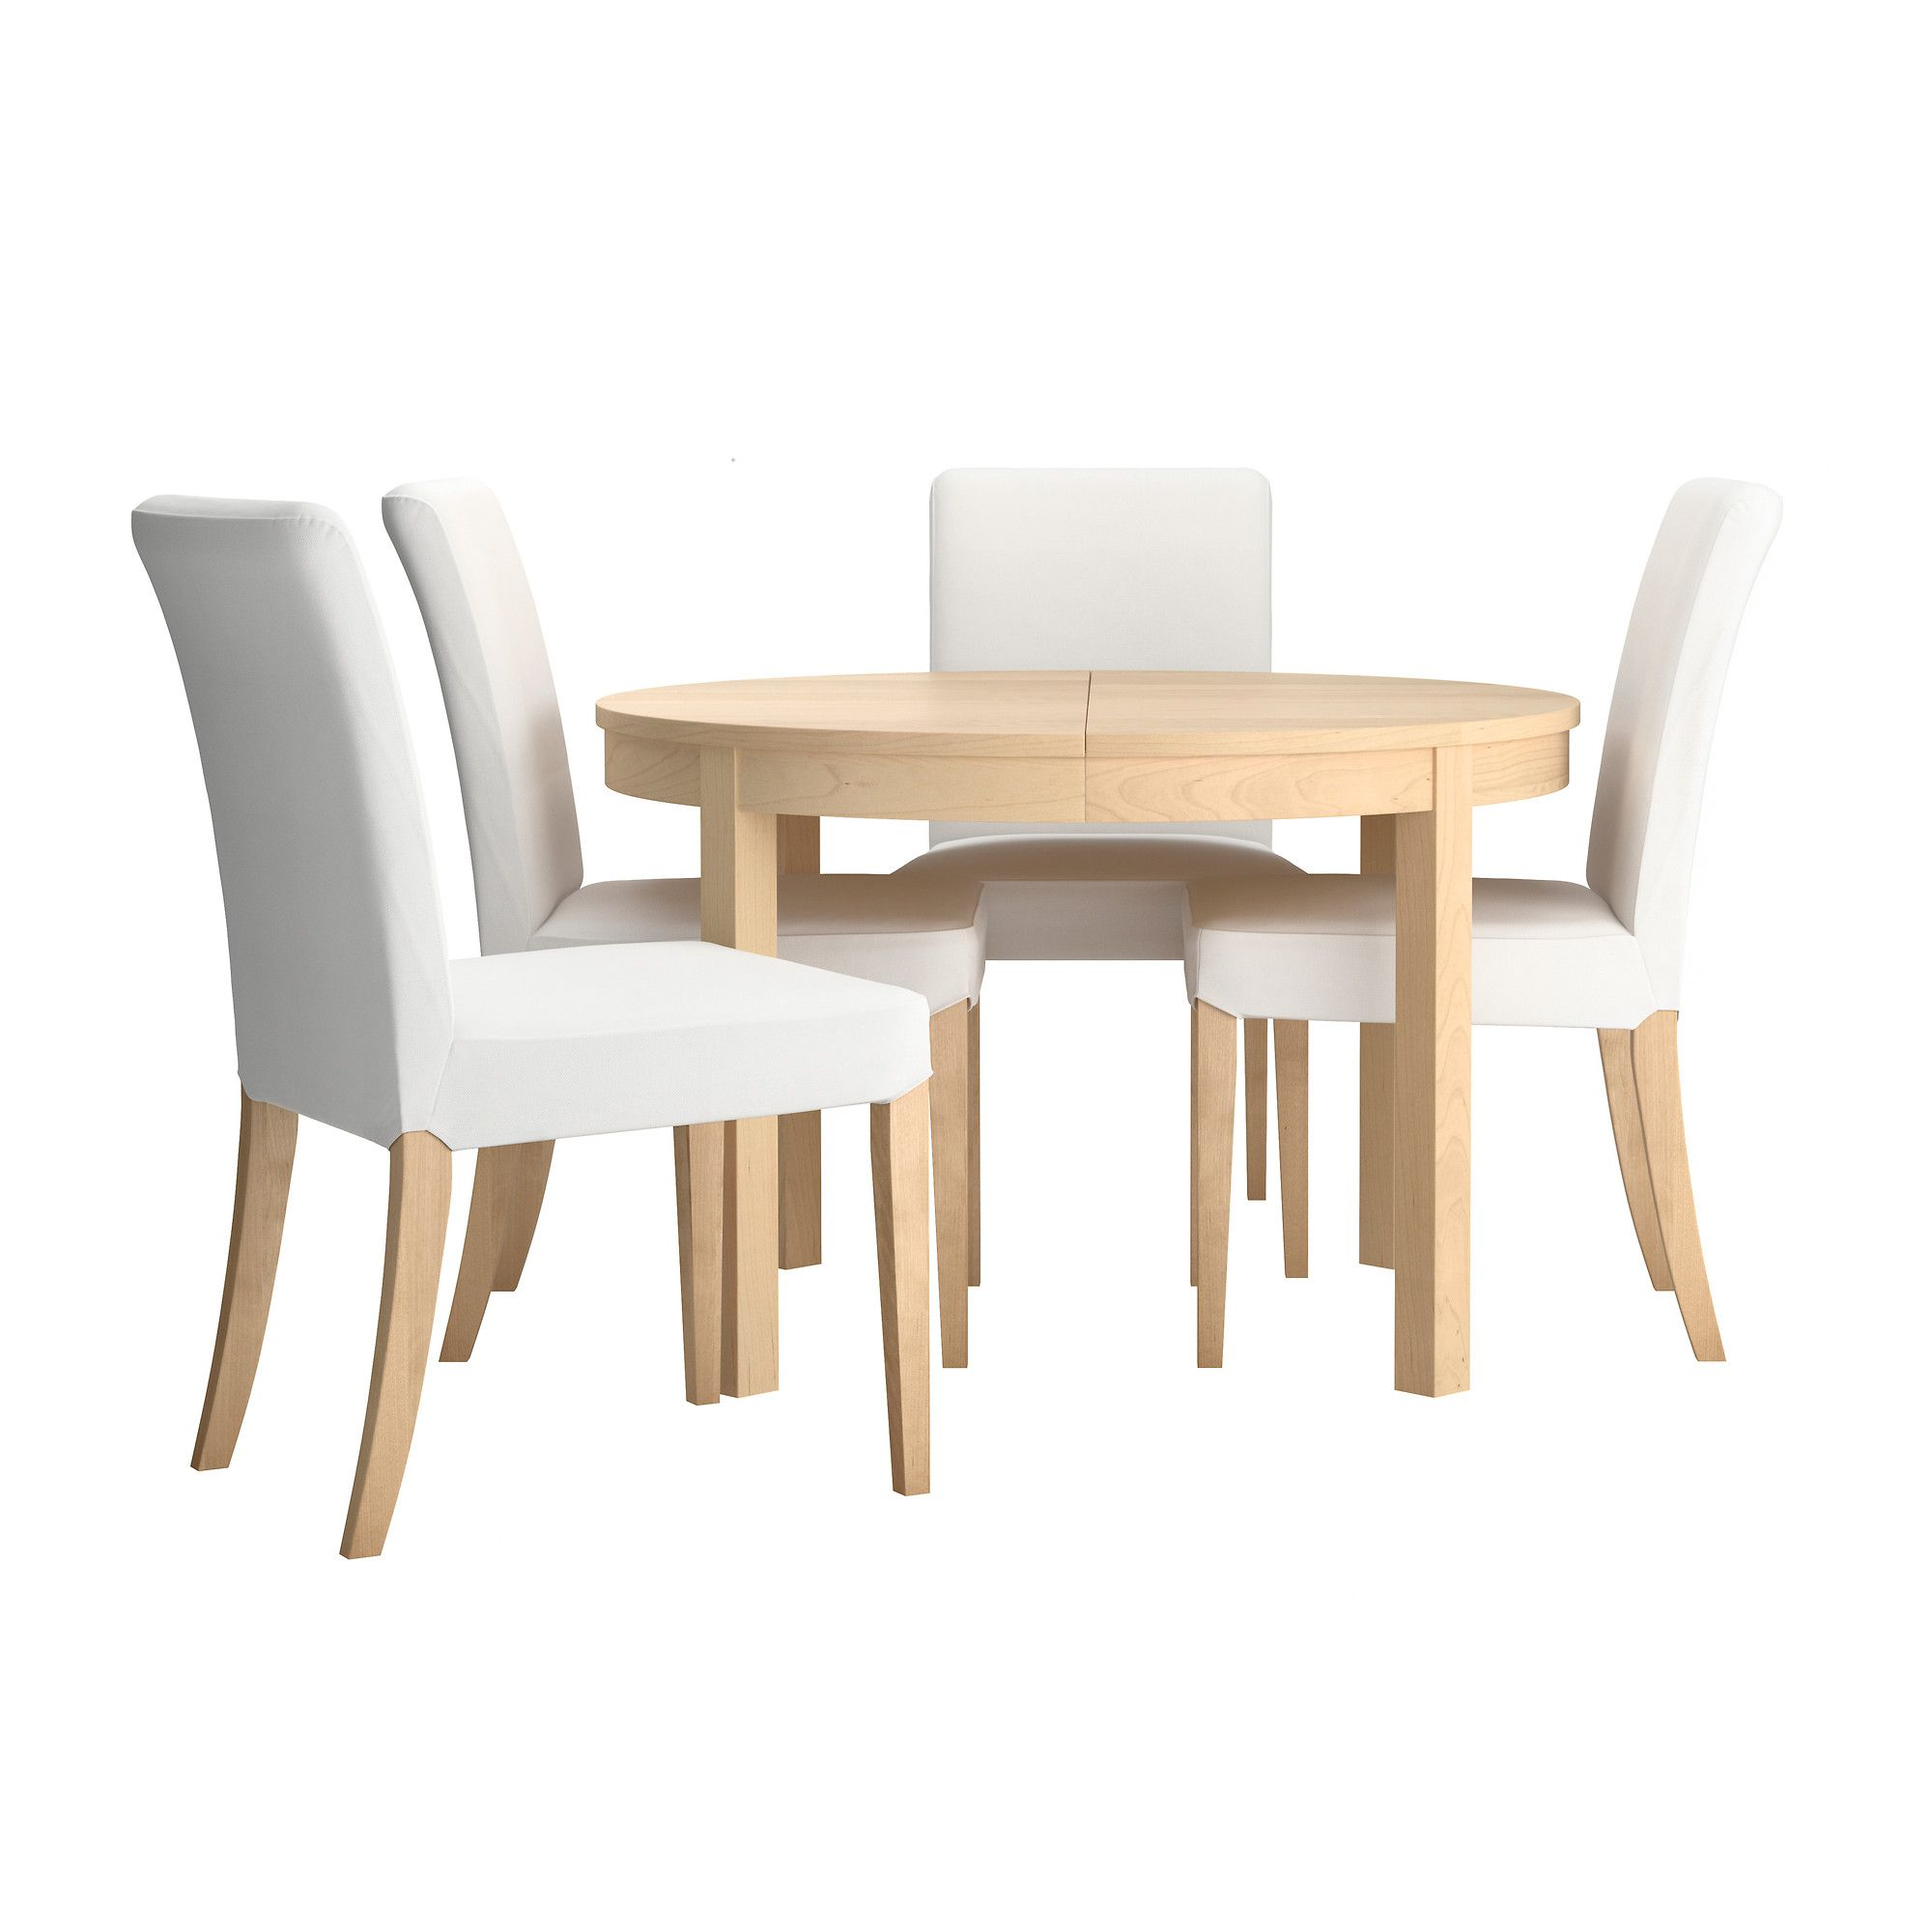 Bjursta henriksdal table and 4 chairs gobo white birch 45 1 4 ikea my dream living - Birch kitchen table ...